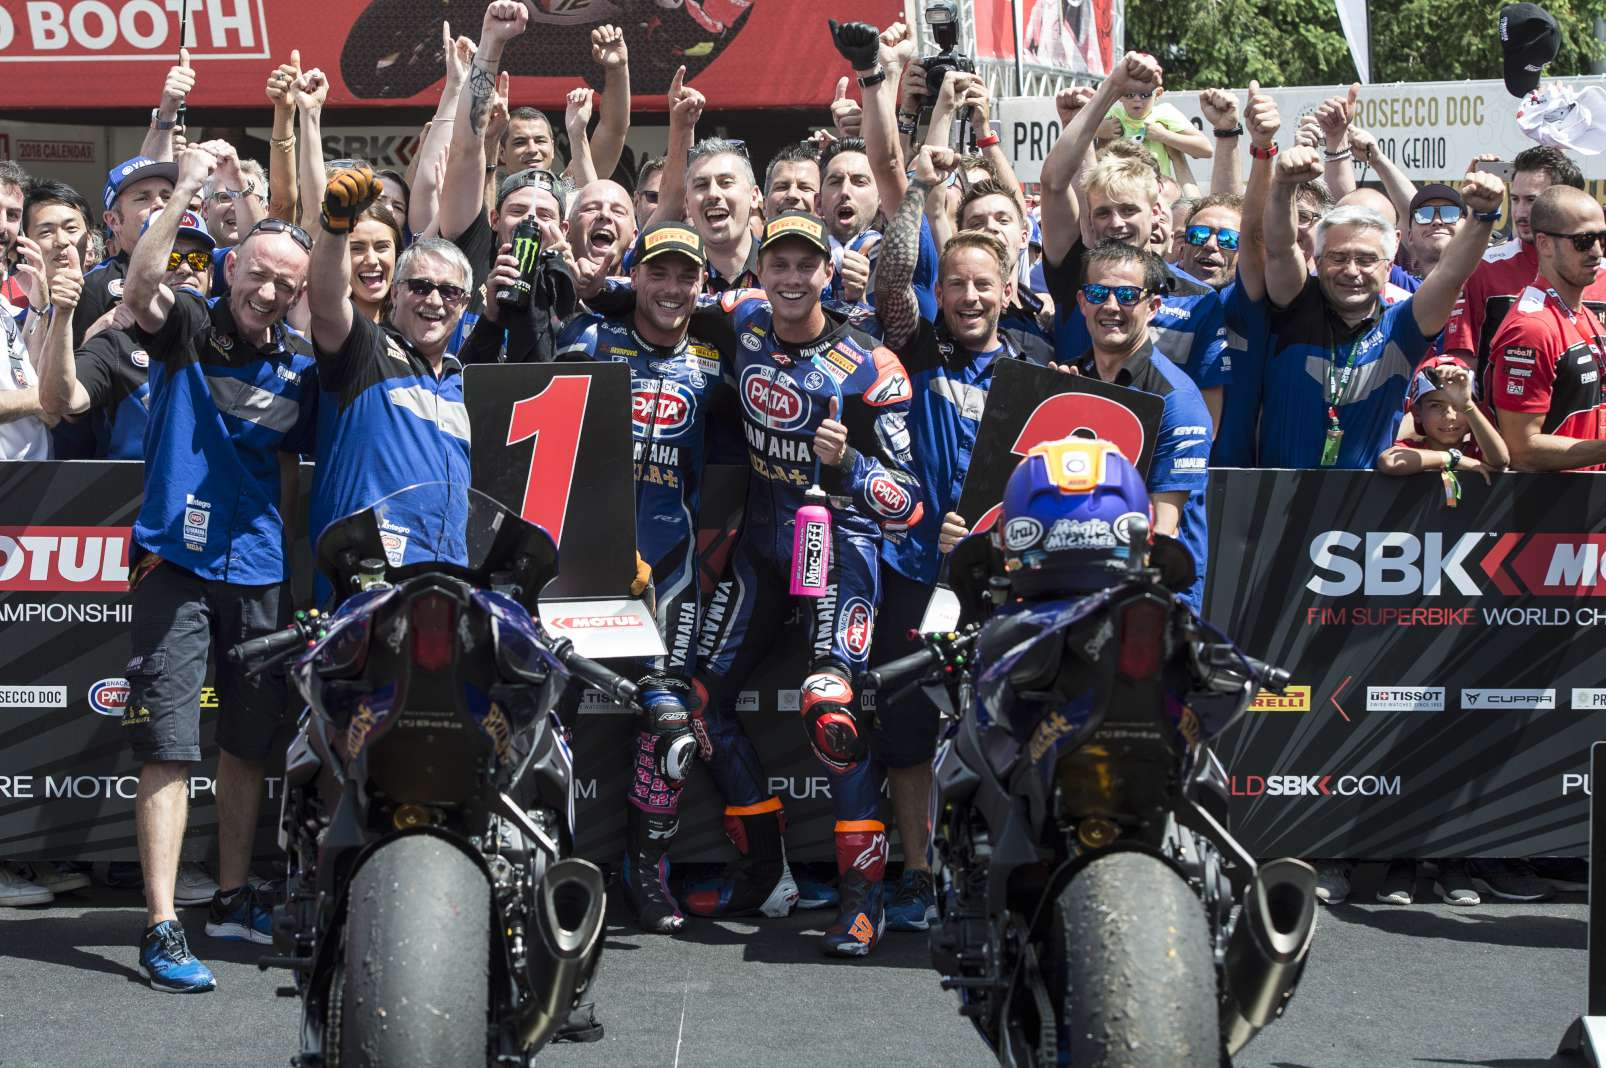 SBK – Yamaha retains Alex Lowes and Michael van der Mark